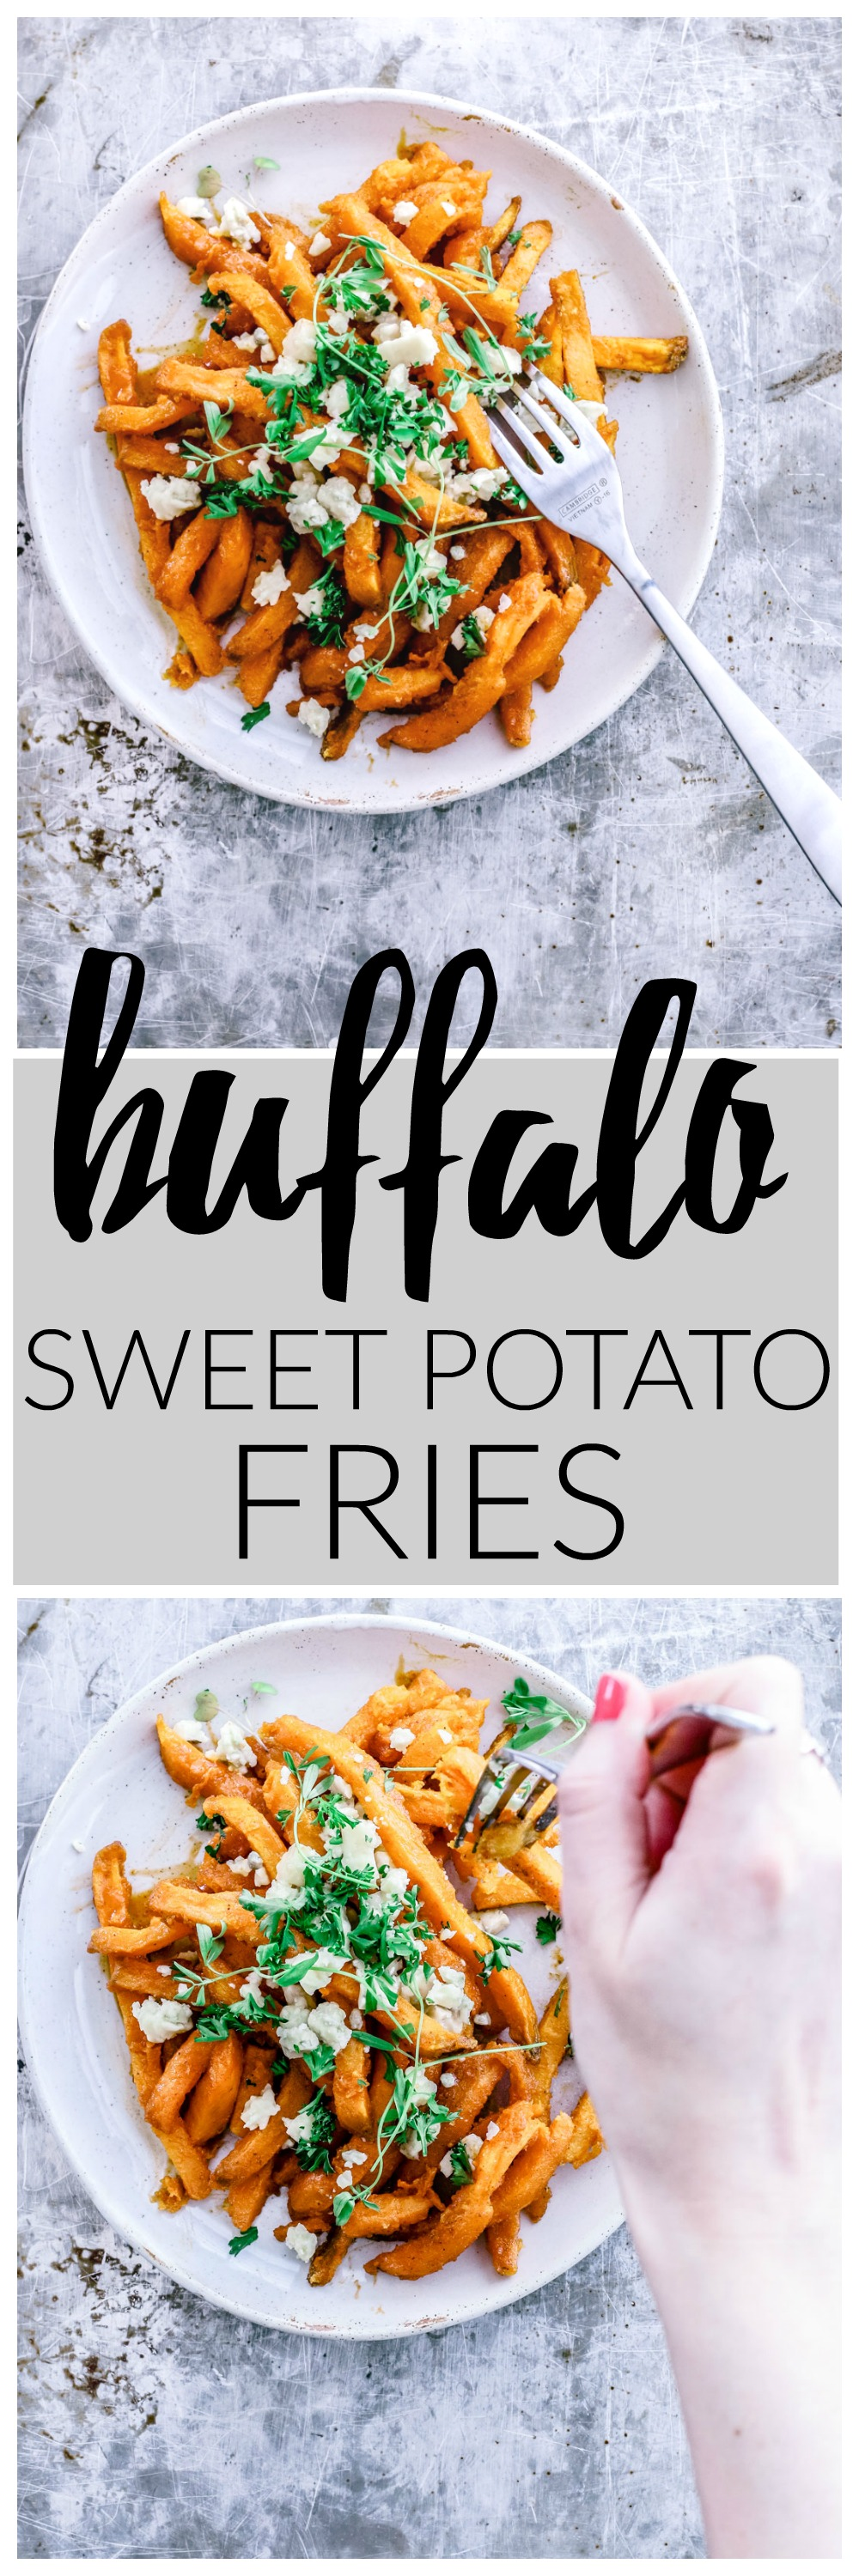 Buffalo Sweet Potato Fries With Smokey Blue Cheese | Killing Thyme — If you're a sucker for Buffalo-flavored *everything*, you need these fries in your life stat.